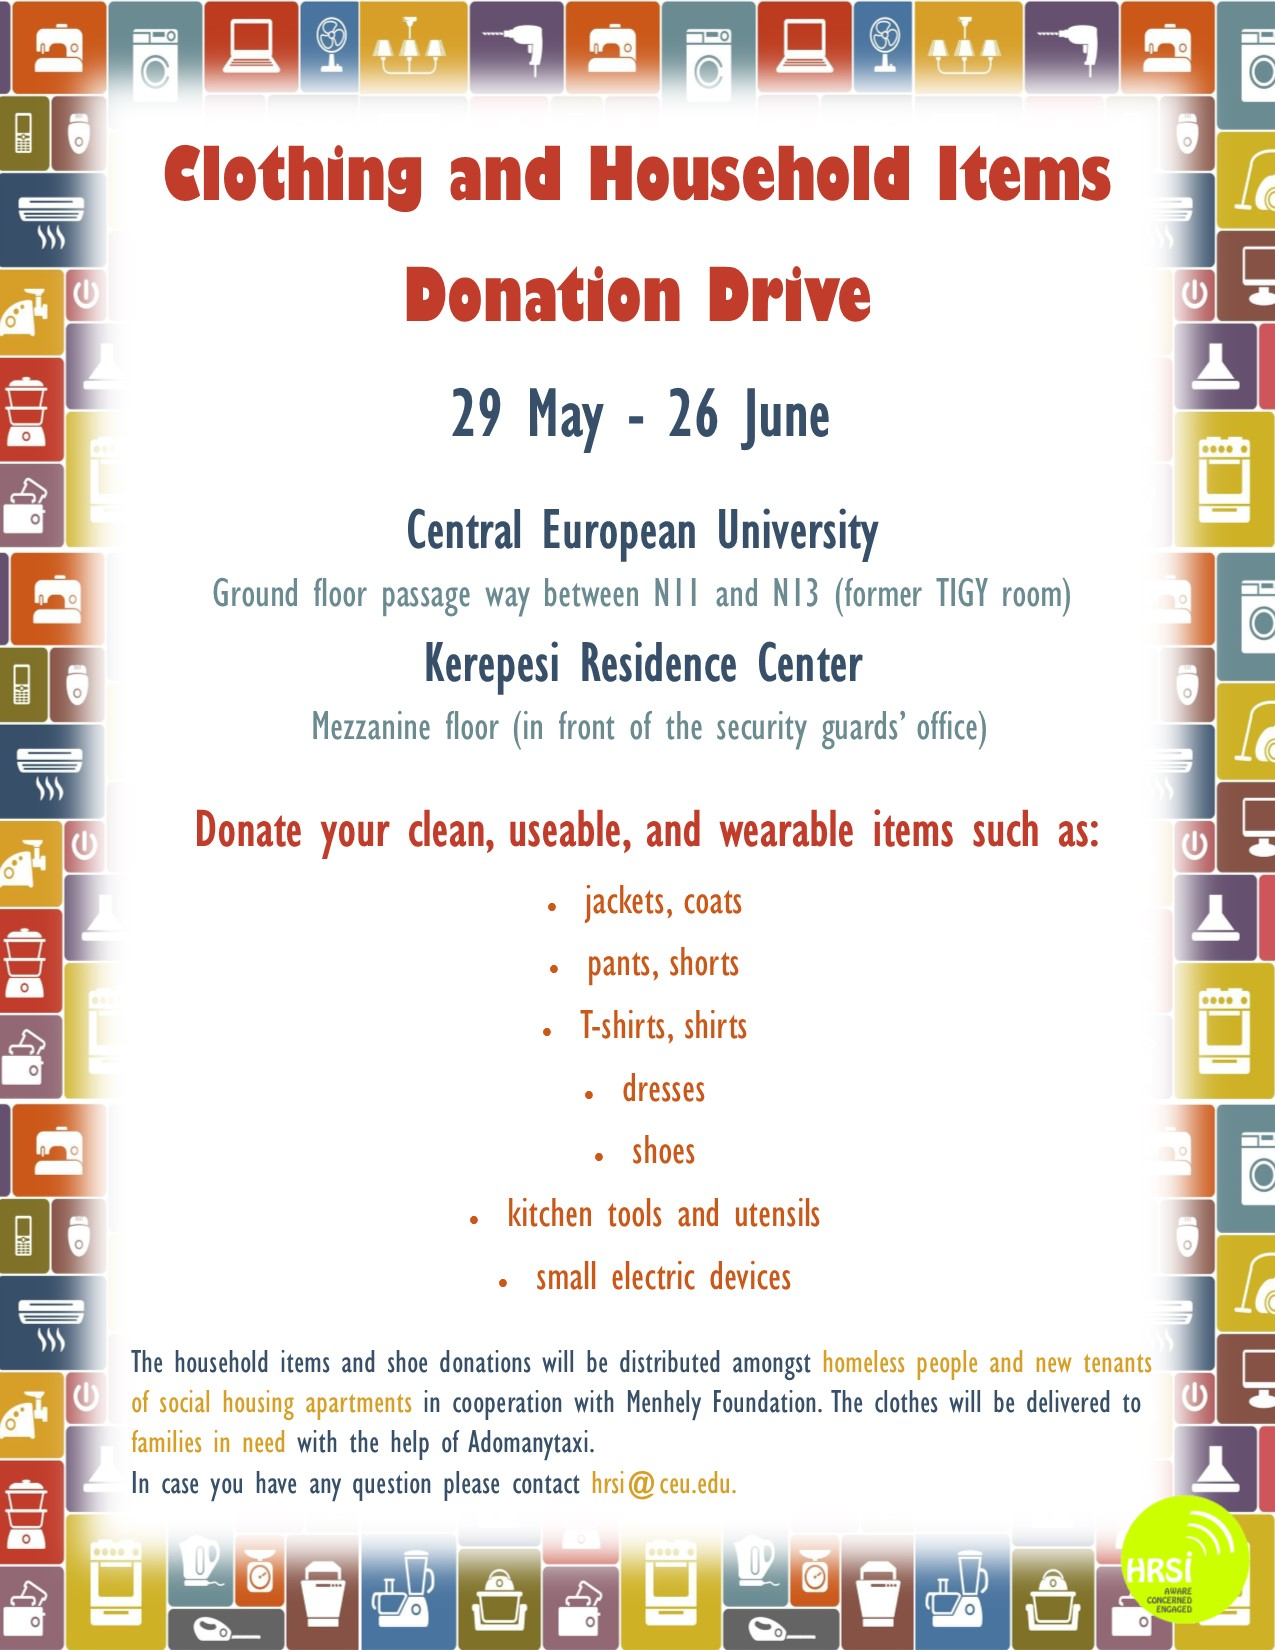 household items and clothing donation drive central european university. Black Bedroom Furniture Sets. Home Design Ideas